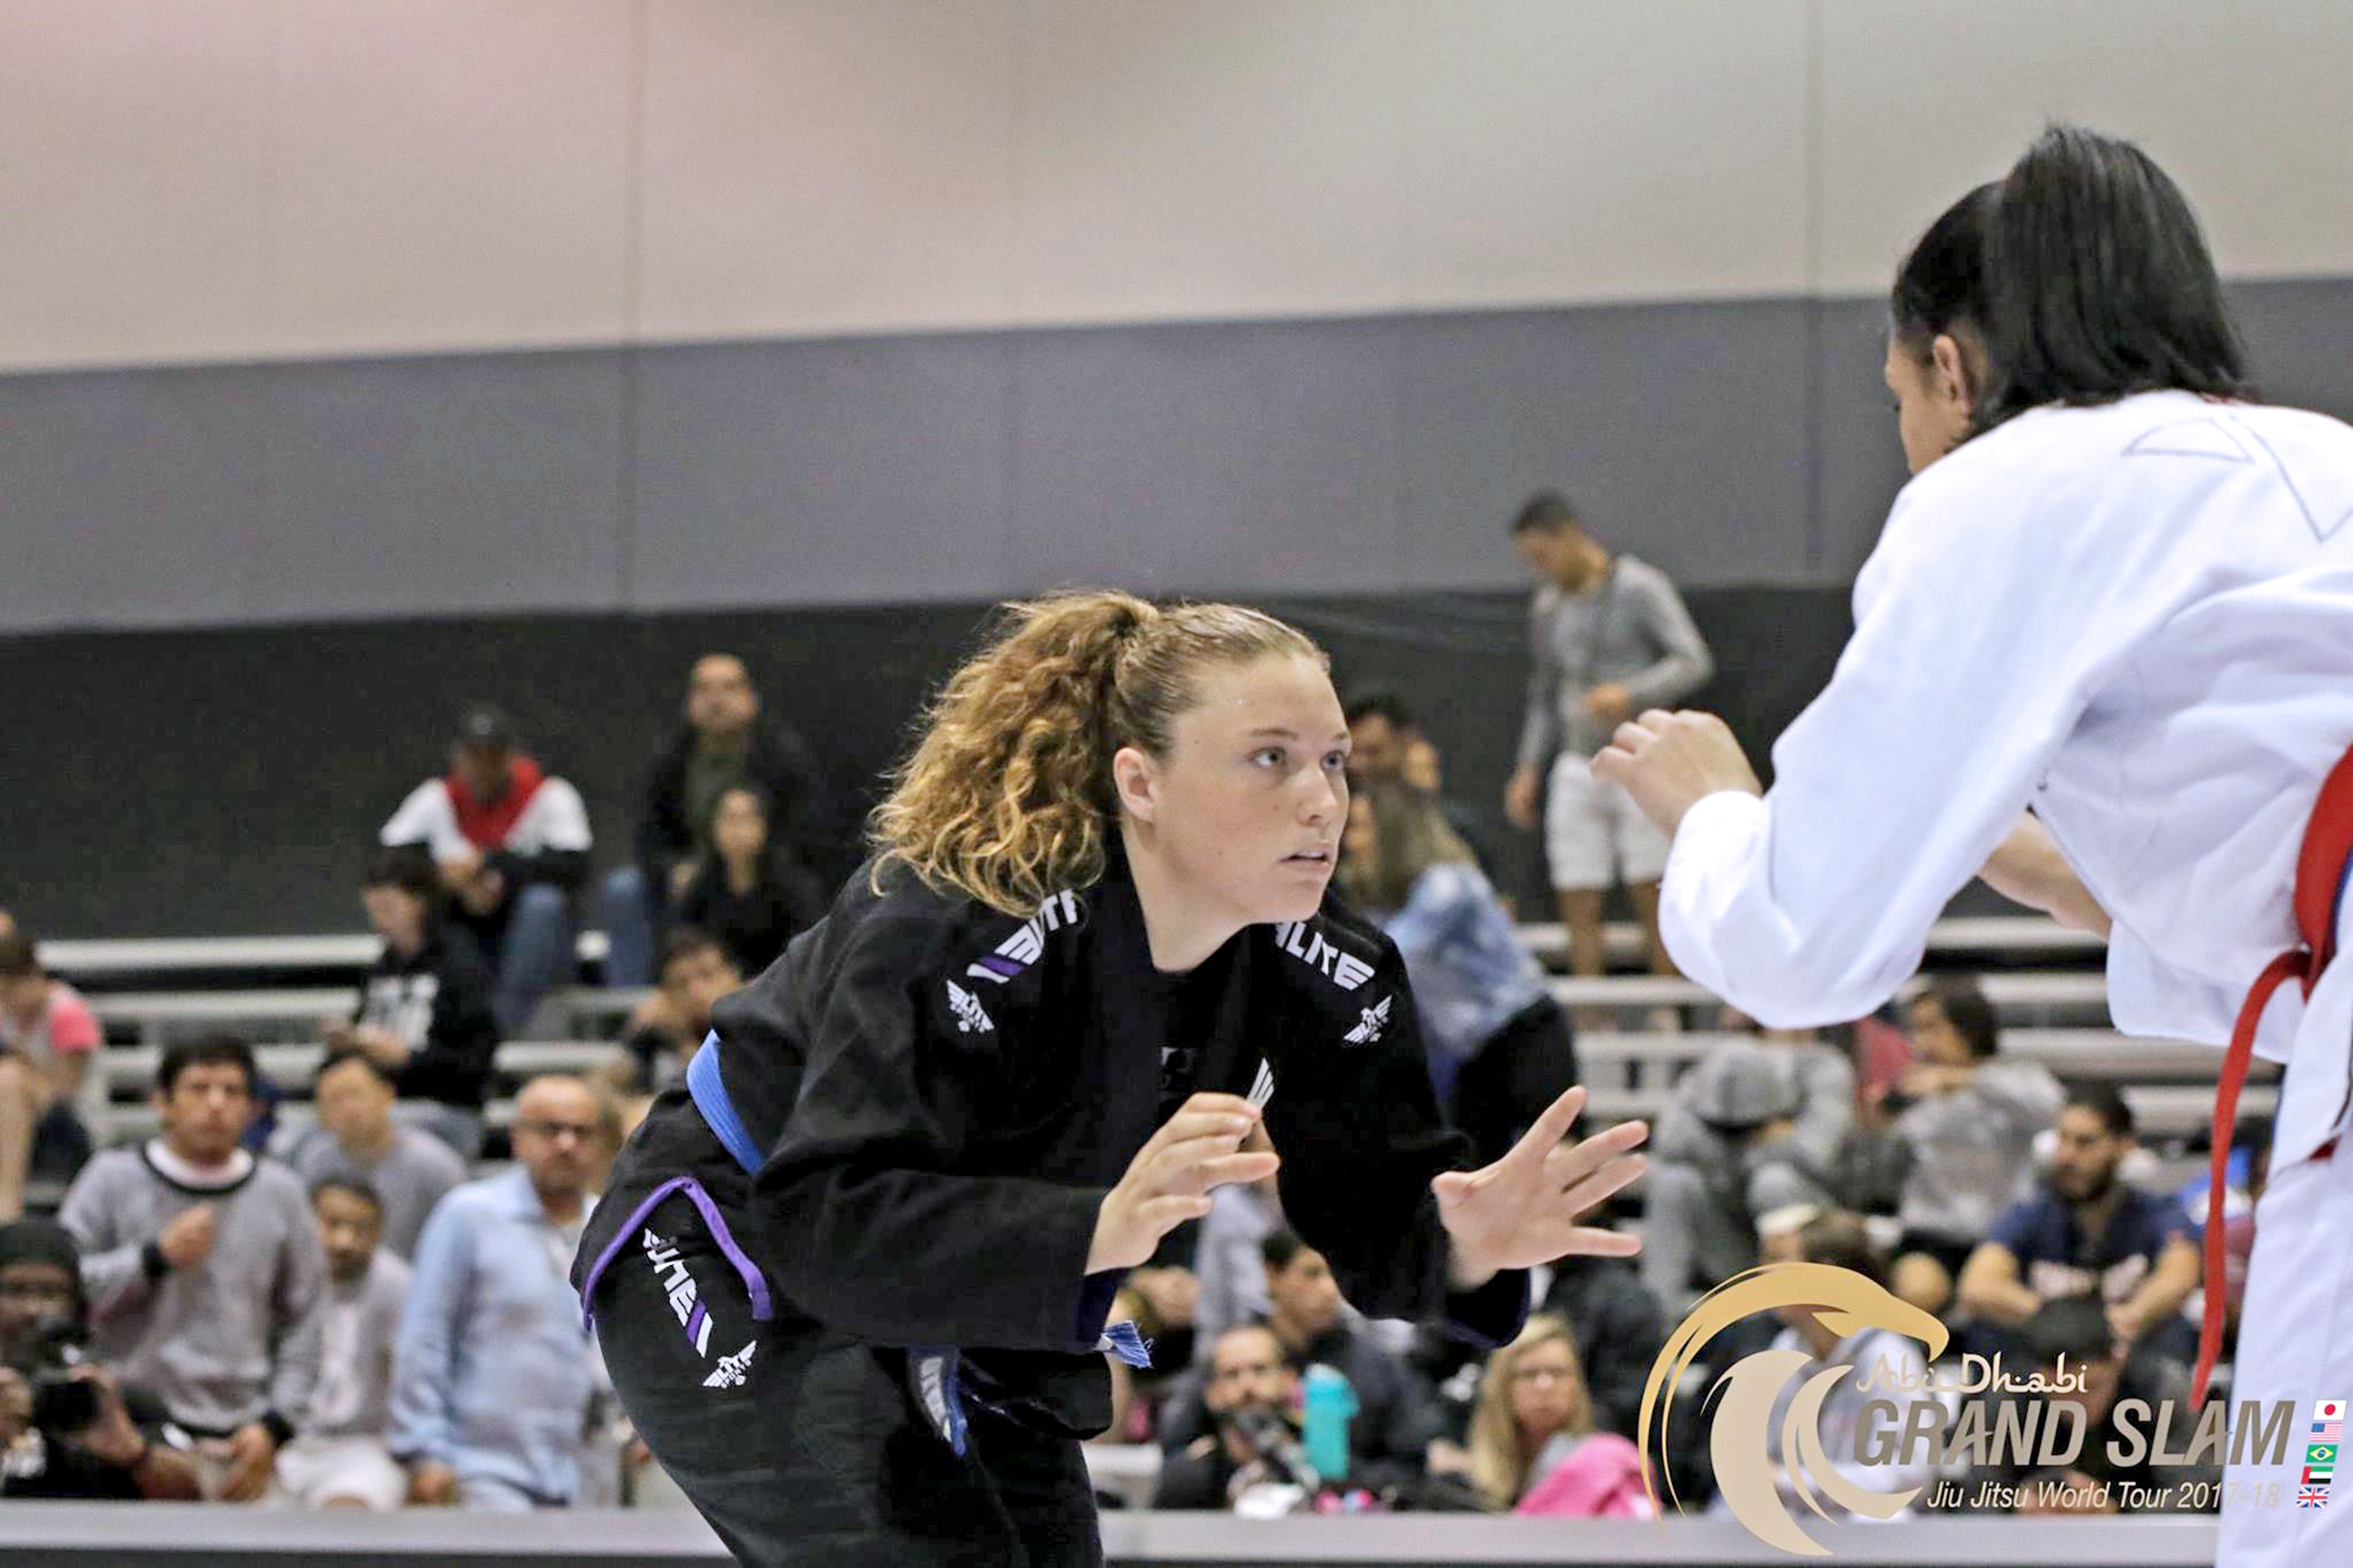 Elite Sports Team Elite Bjj Fighter Michelle Nicole Dunchus Image2